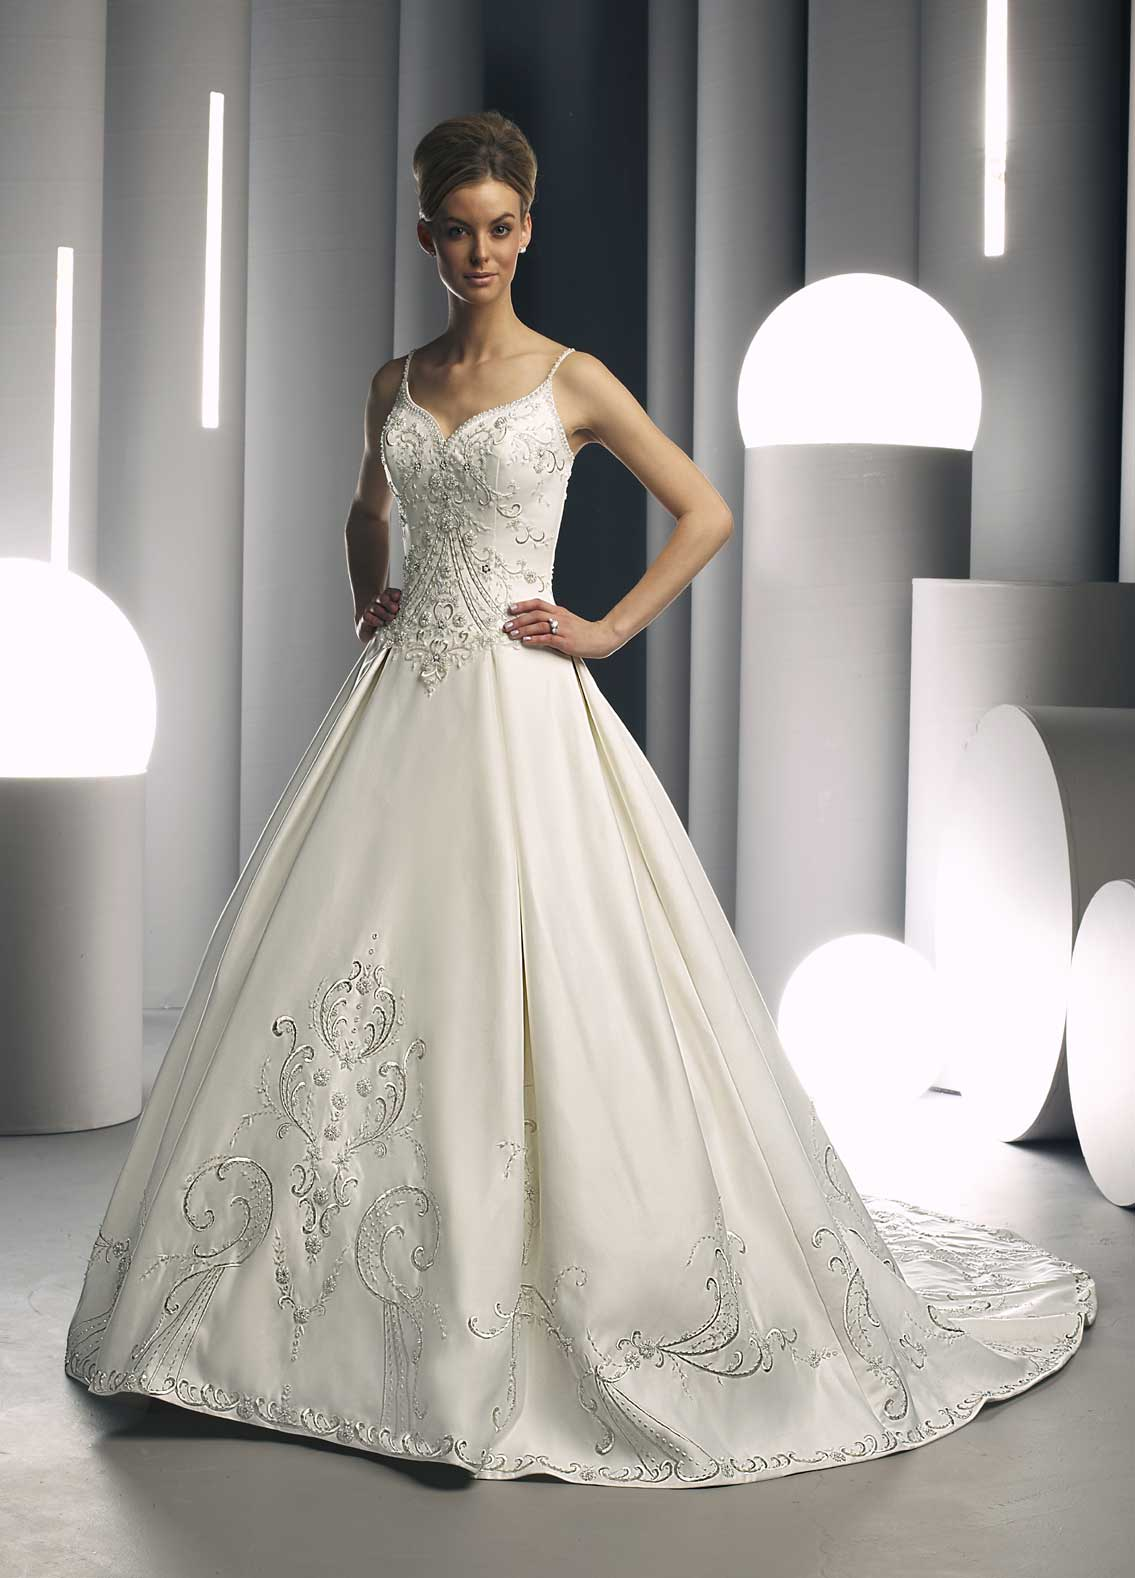 Gorgeous wedding dresses behind the mute button